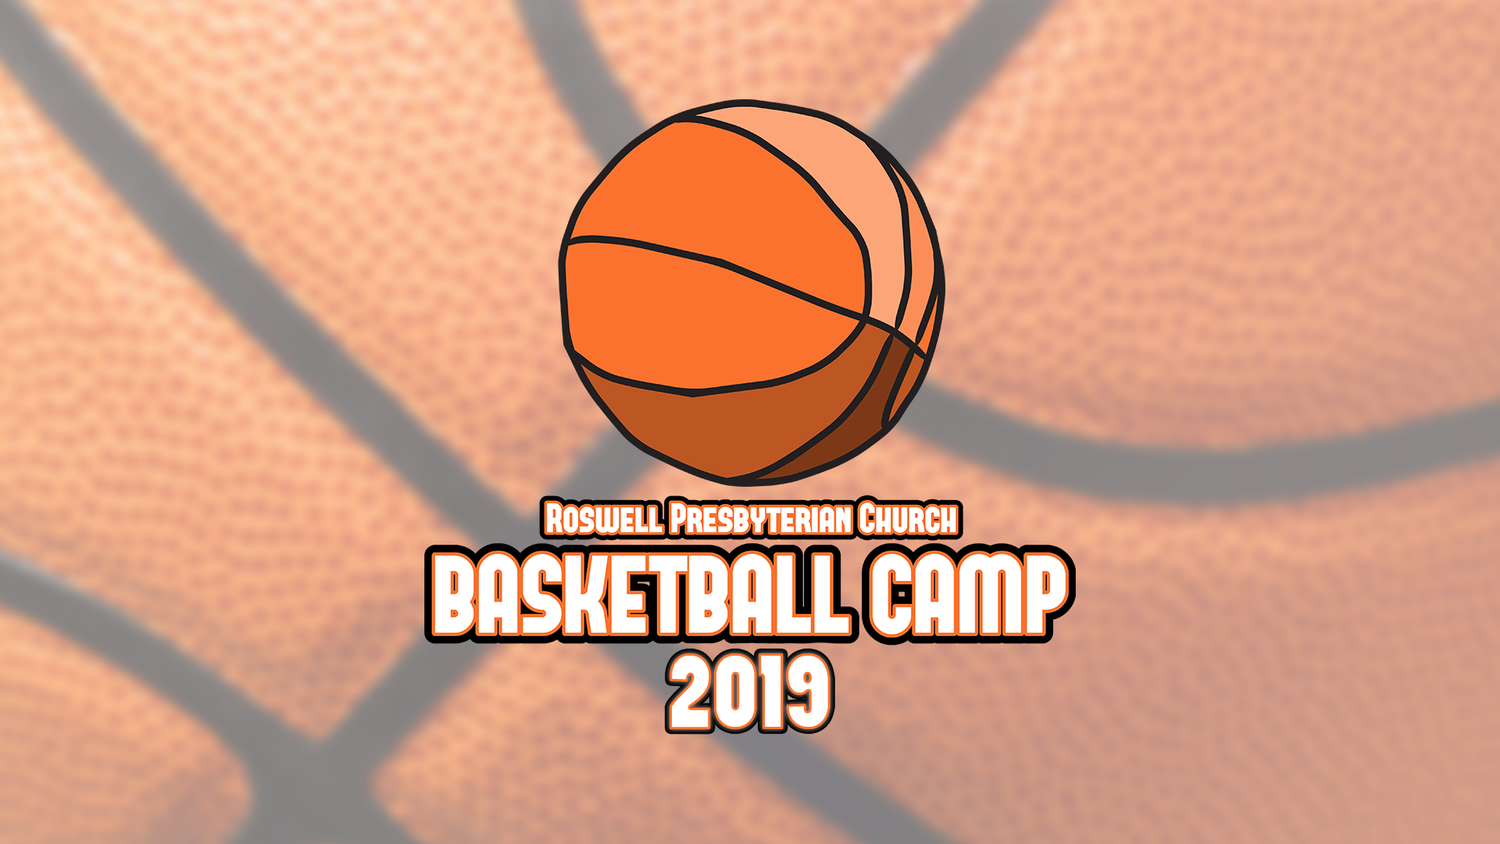 Basketball+Camp+2019+1920x1080.png